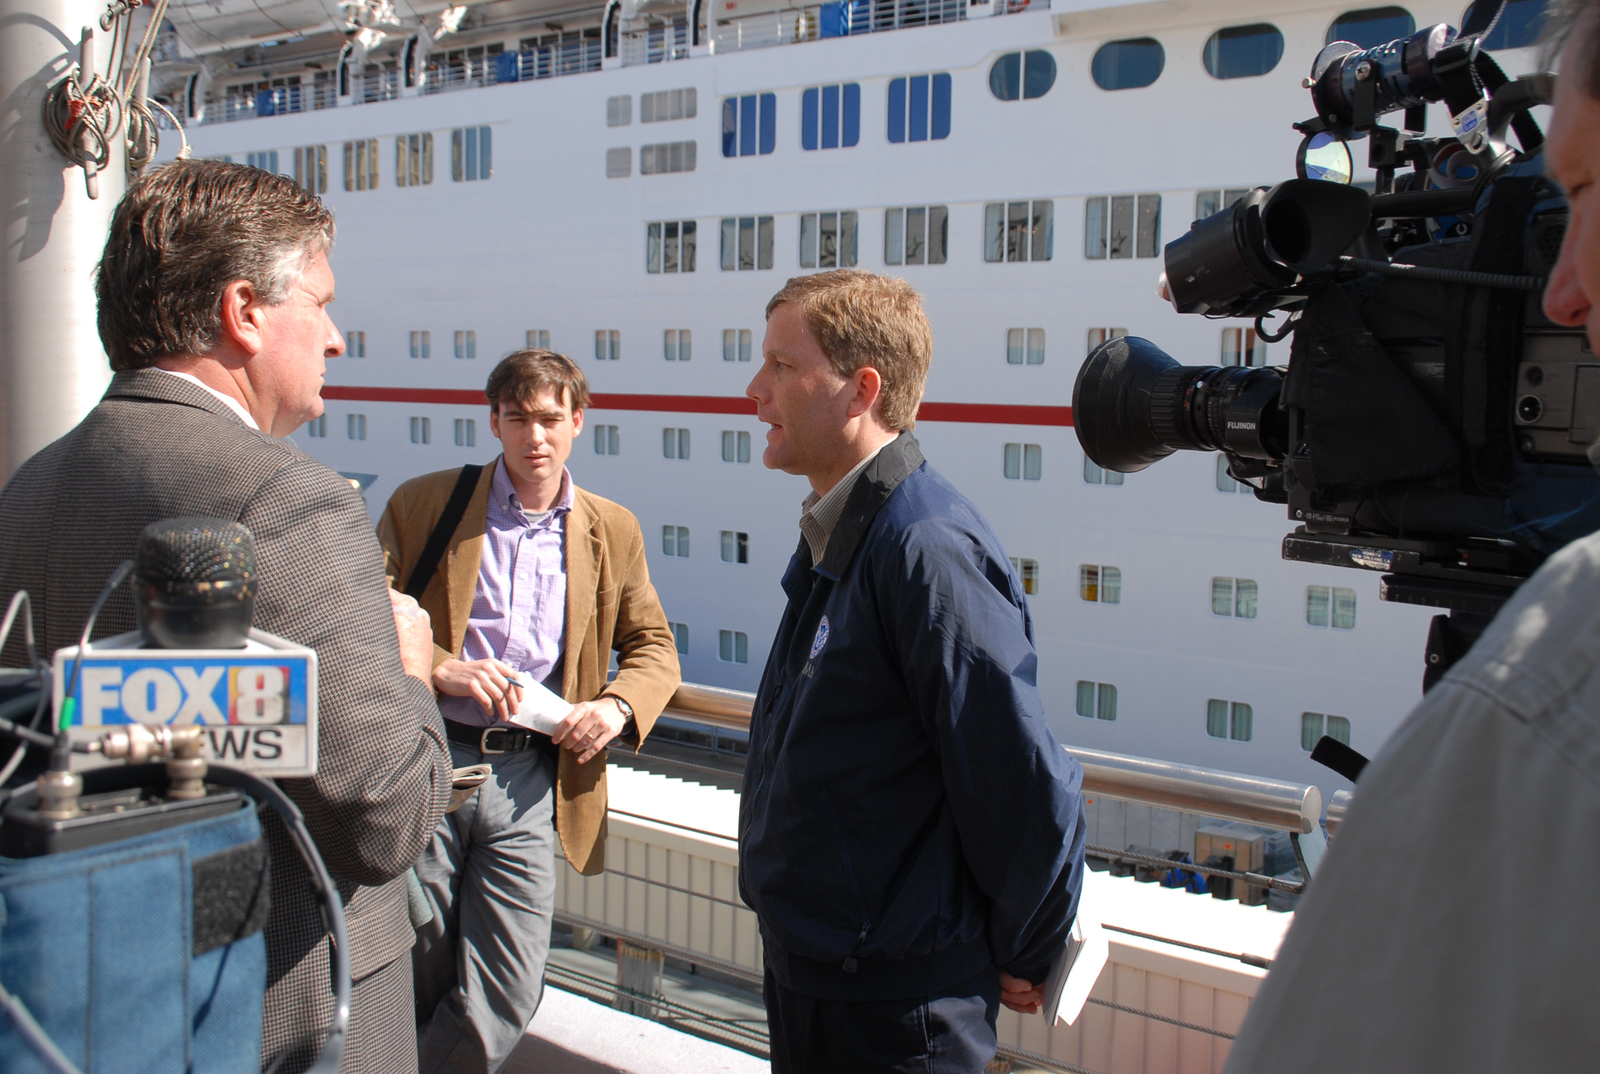 "[Hurricane Katrina] New Orleans, St. Bernard, LA, 02-27-06 -- FEMA Public Affairs Officer Dave Passey talks to reporter Rob Masson from Fox News 8 at the cruise ship ""Sensation"" about the progress of cruise ship residents moving into land based housing.  FEMA is helping victims living on the cruise ships find long term housing before the Ships contract expires March 1st and the ship sets sail.  Marvin Nauman/FEMA photo"